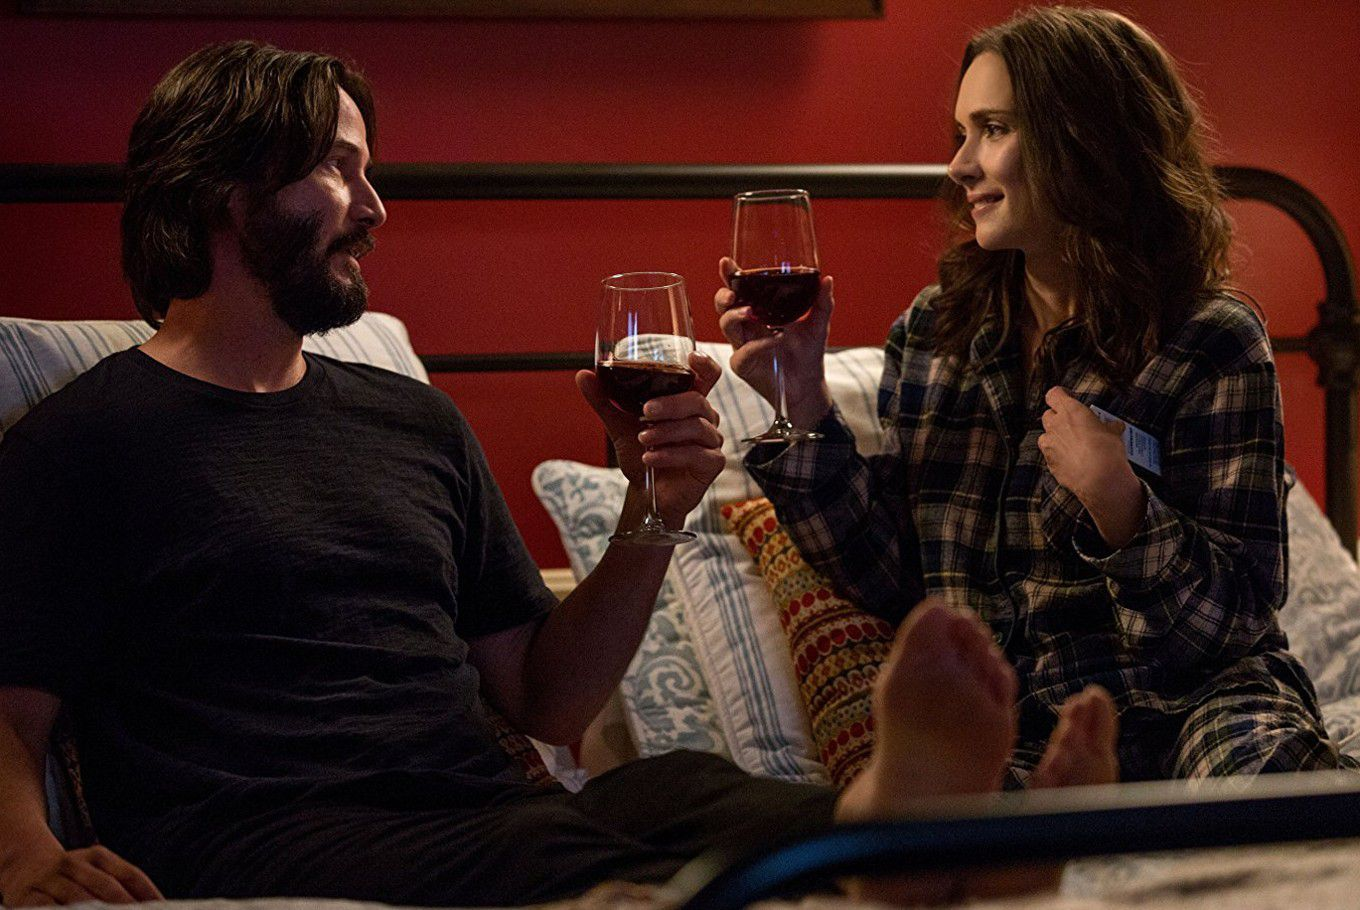 Destination Wedding - film scene bed and wine Keanu Reeves Winona Ryder